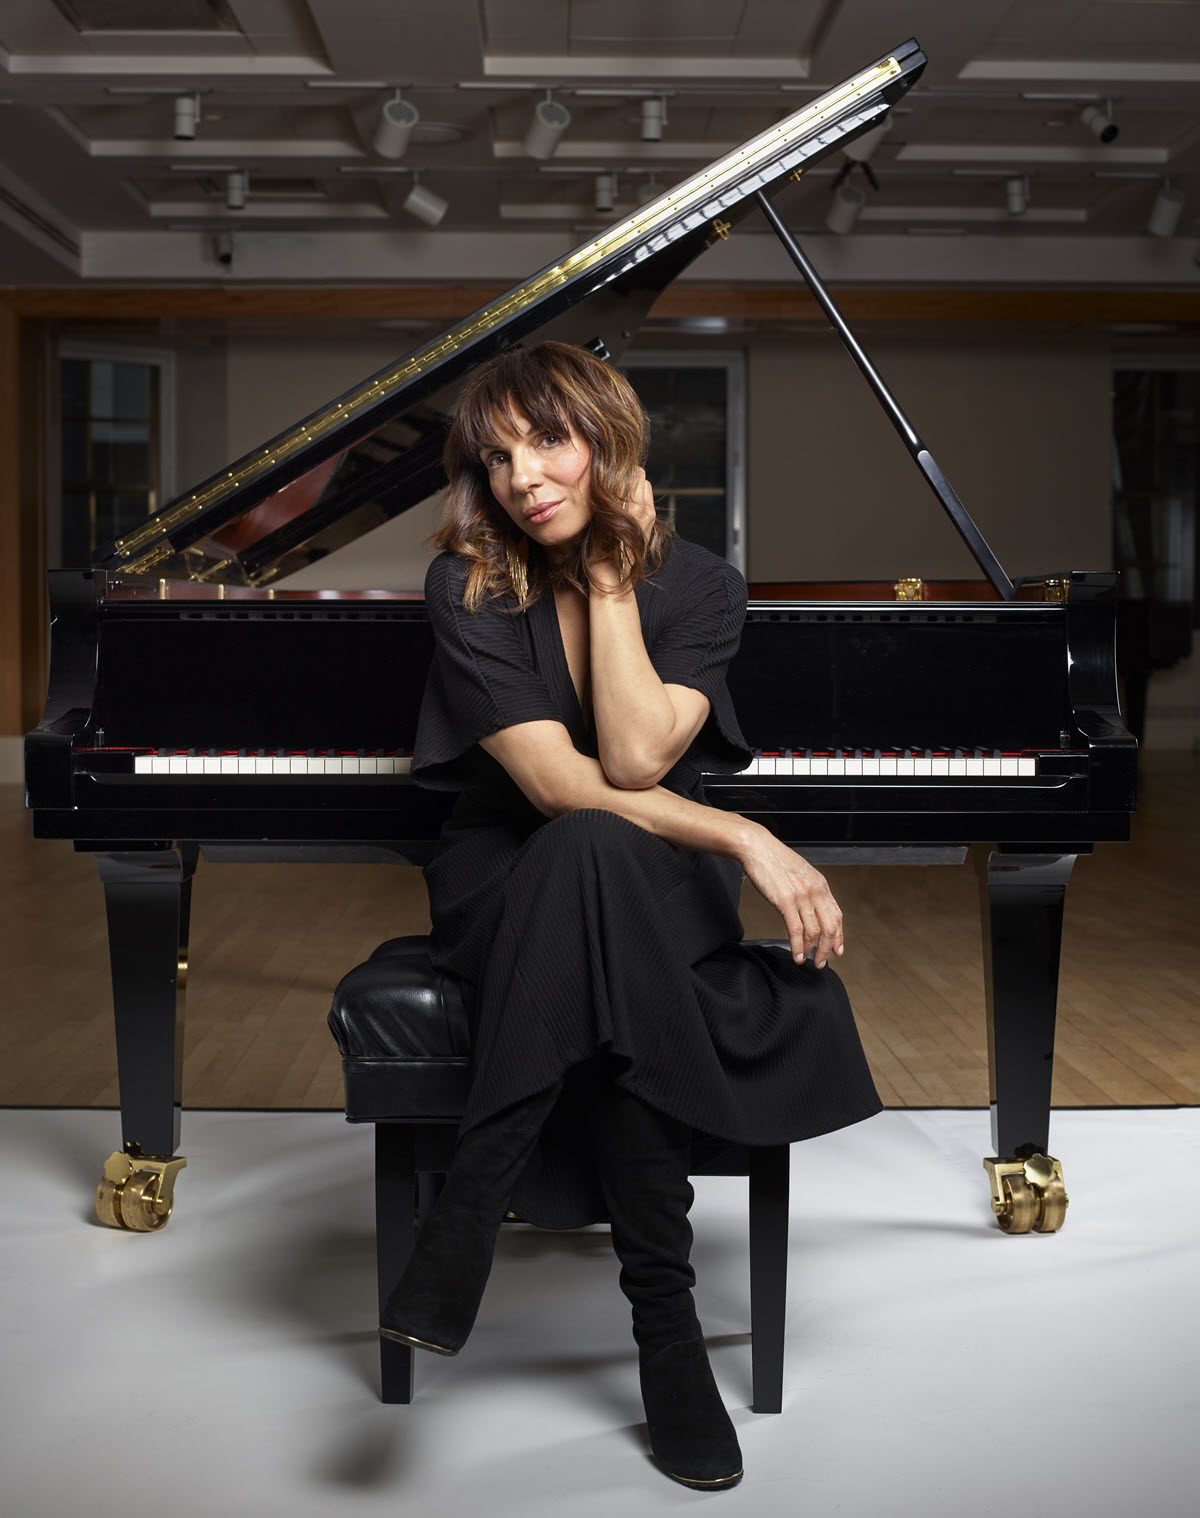 Woman in a black dress and suede boots seated casually with her legs crossed an her head resting lightly on her hand on a piano bench with a grand piano open behind her.